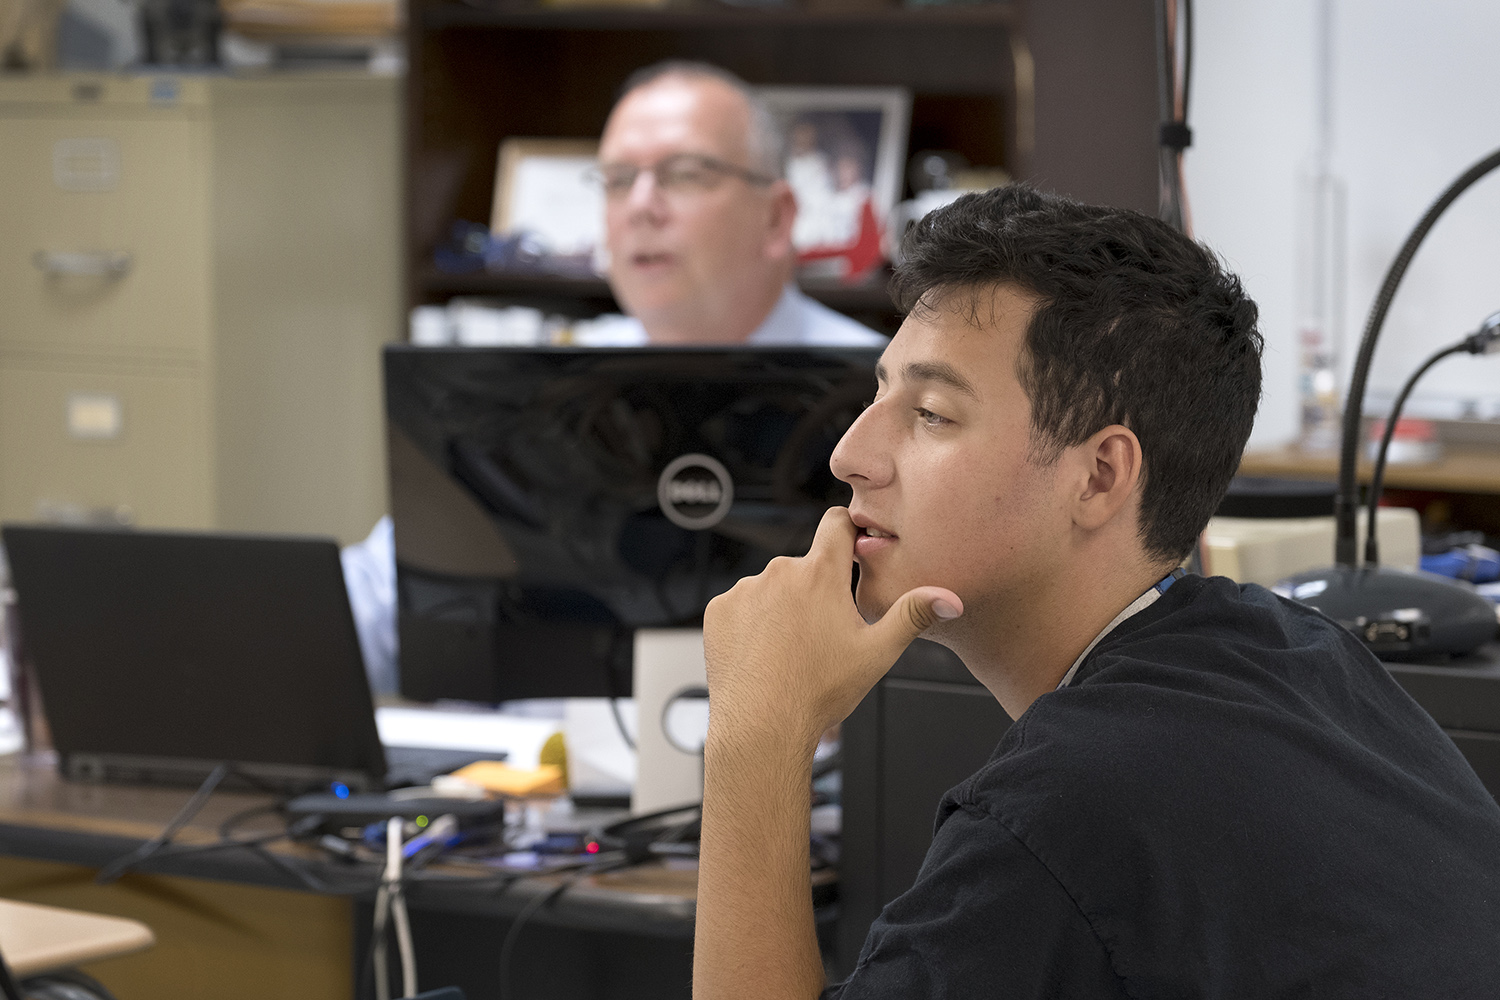 Joey Amador, a Coleman High School senior, is taking Strickland's computer science class on the first day of school.